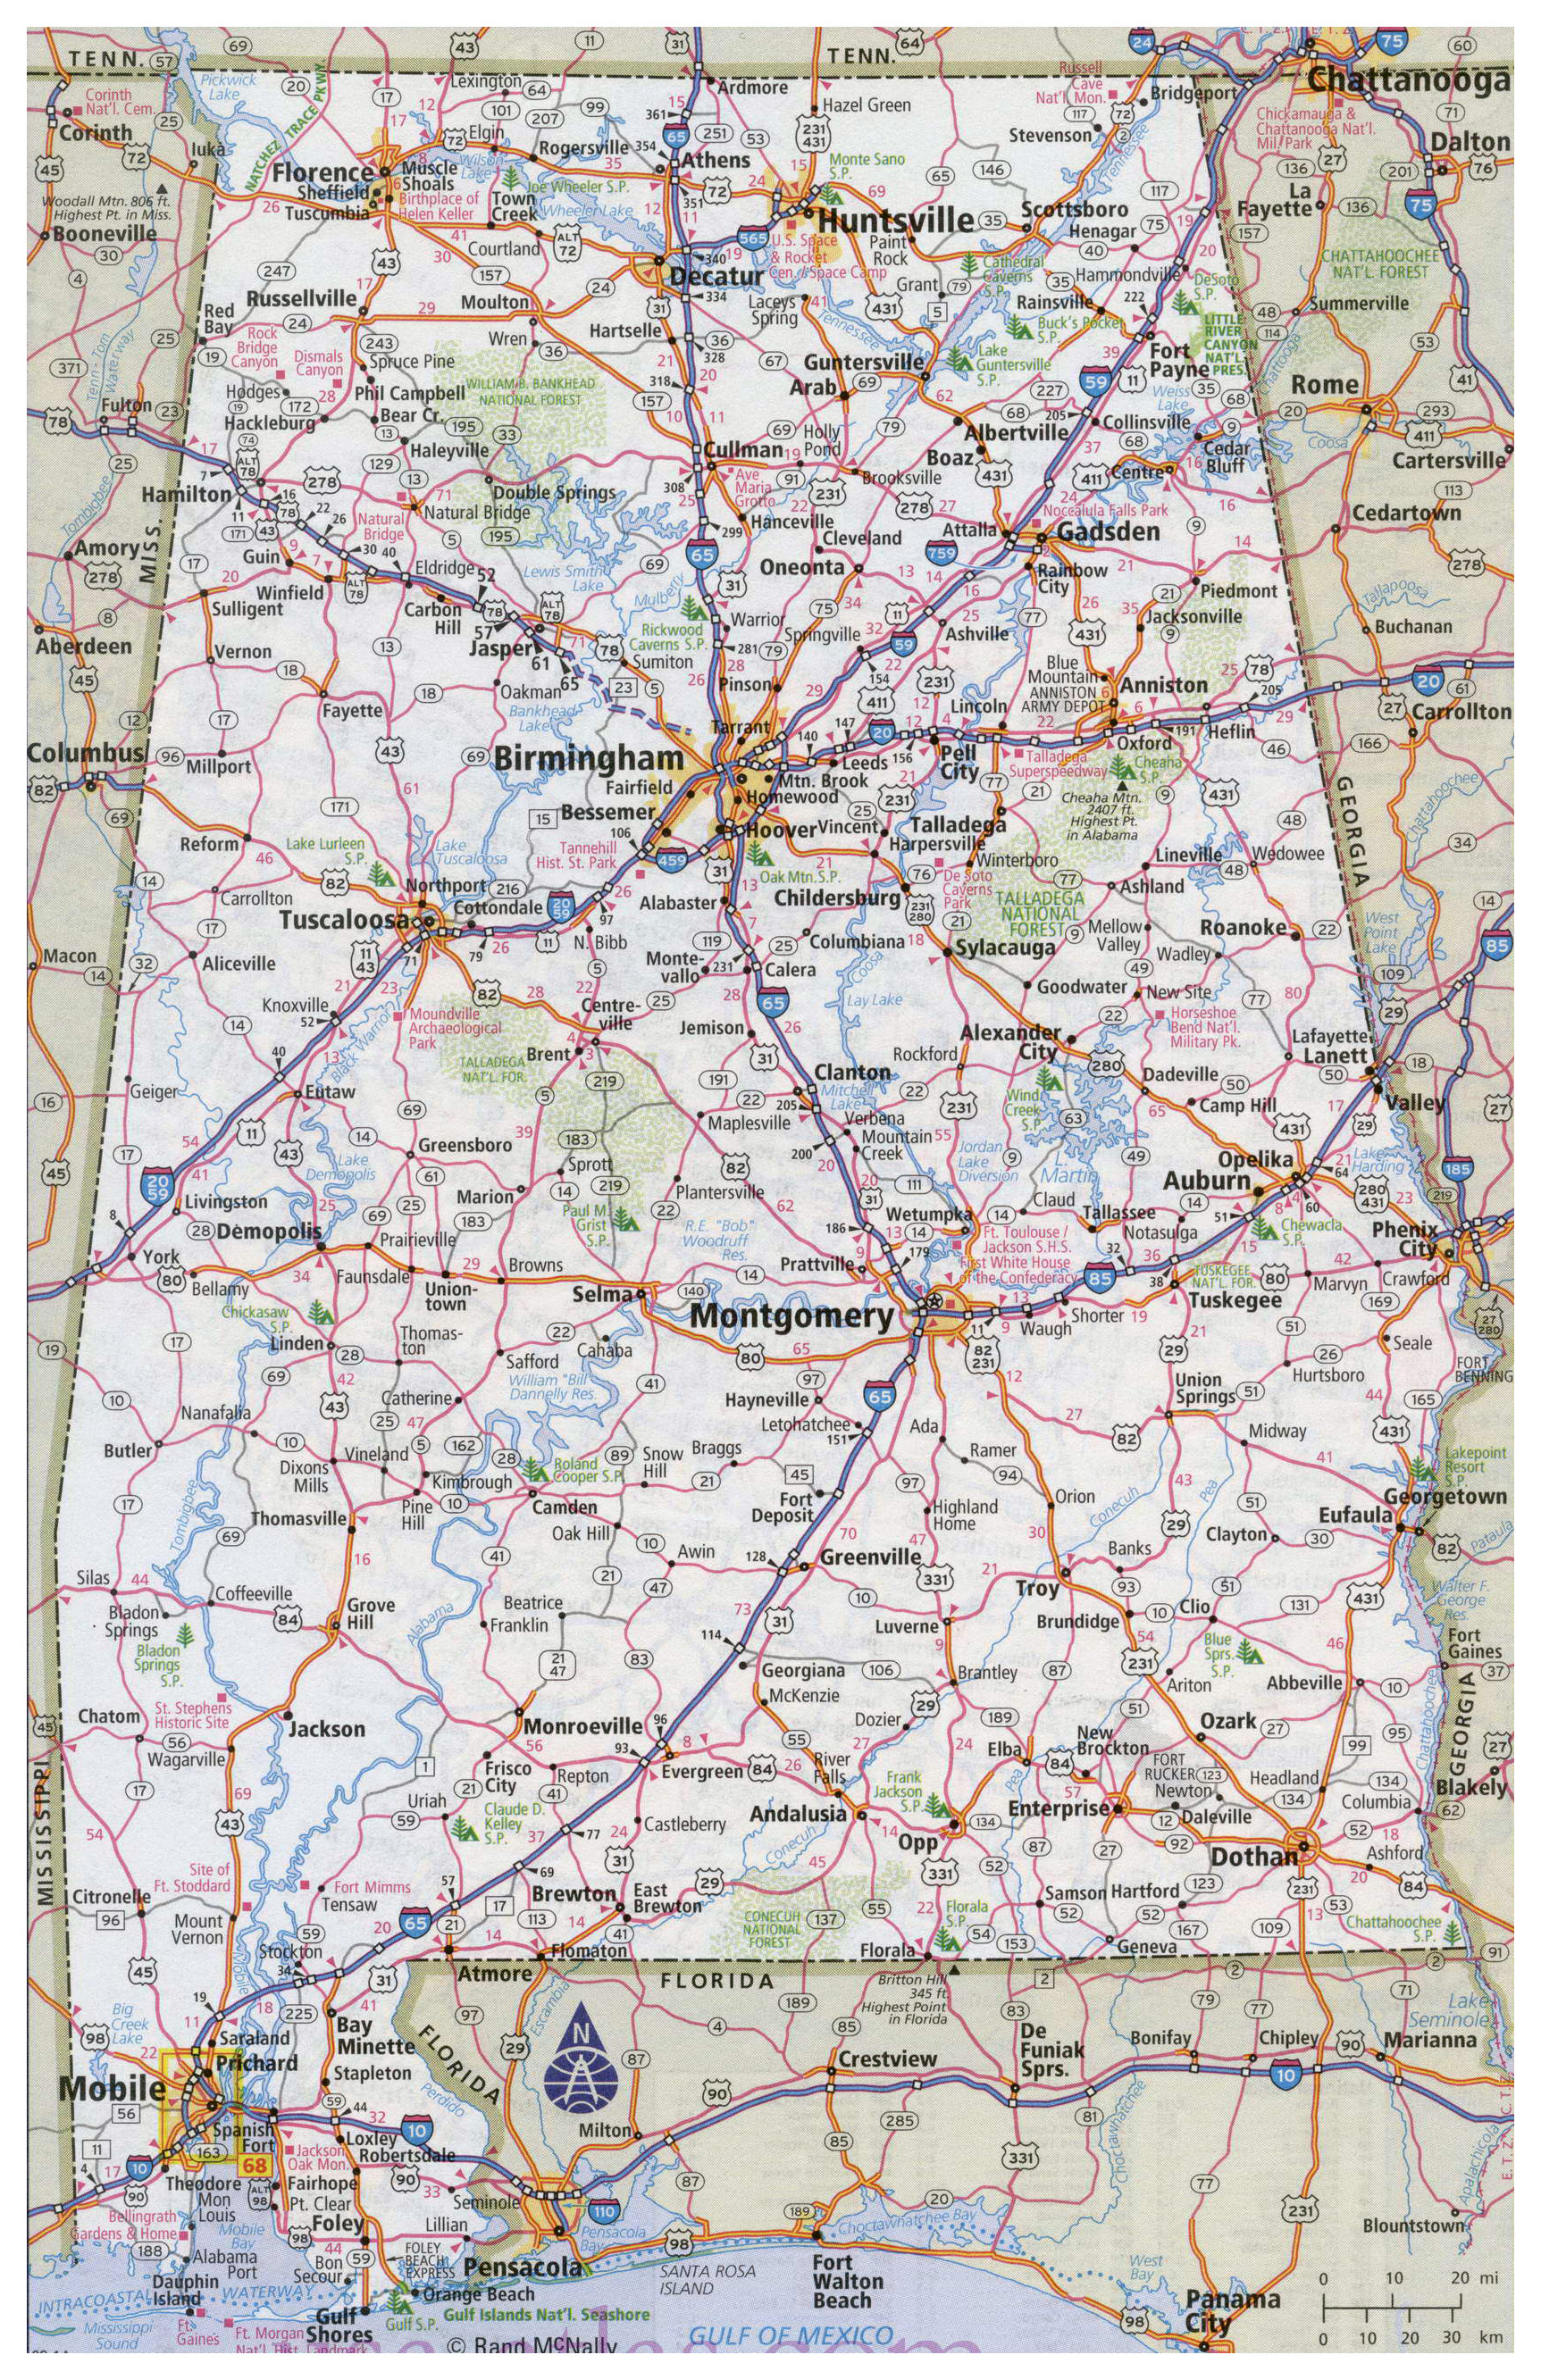 Large Detailed Road Map Of Alabama With All Cities Vidianicom - Road map of alabama